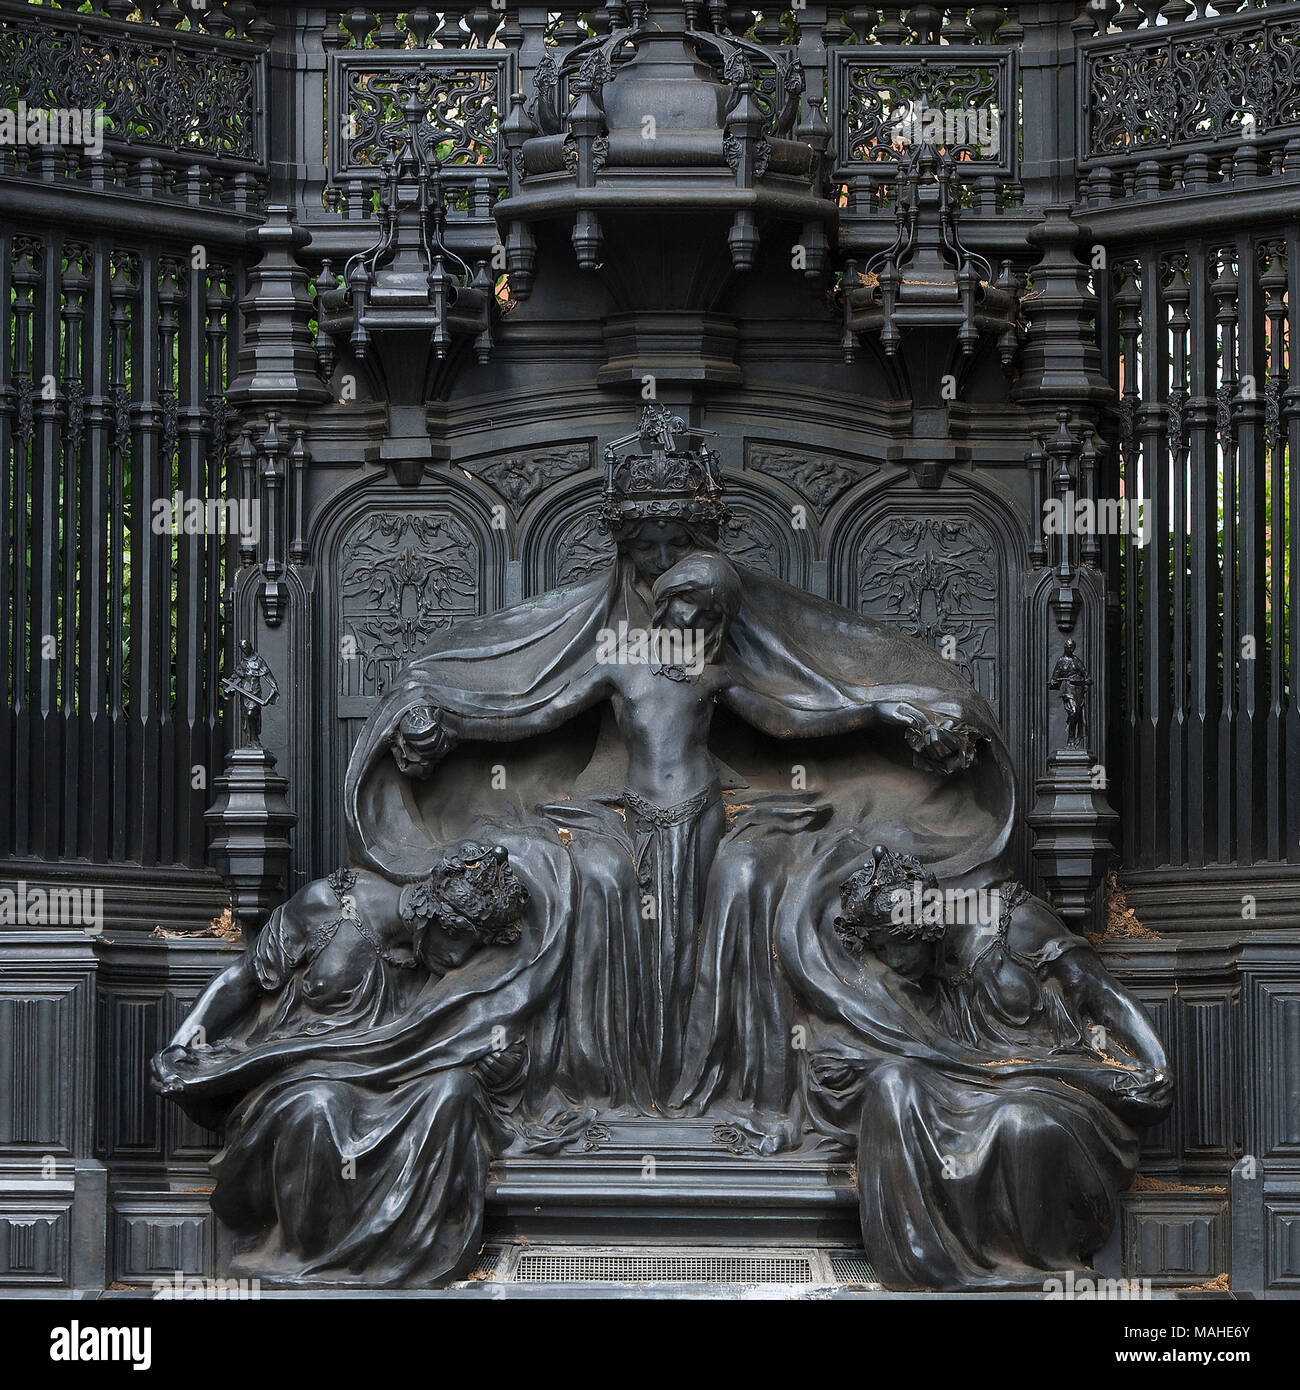 Queen Alexandra Memorial by Sir Alfred Gilbert (1854 - 1934)  Albert Edward, the son of Queen Victoria, married the 18-year-old Danish princess Alexan - Stock Image